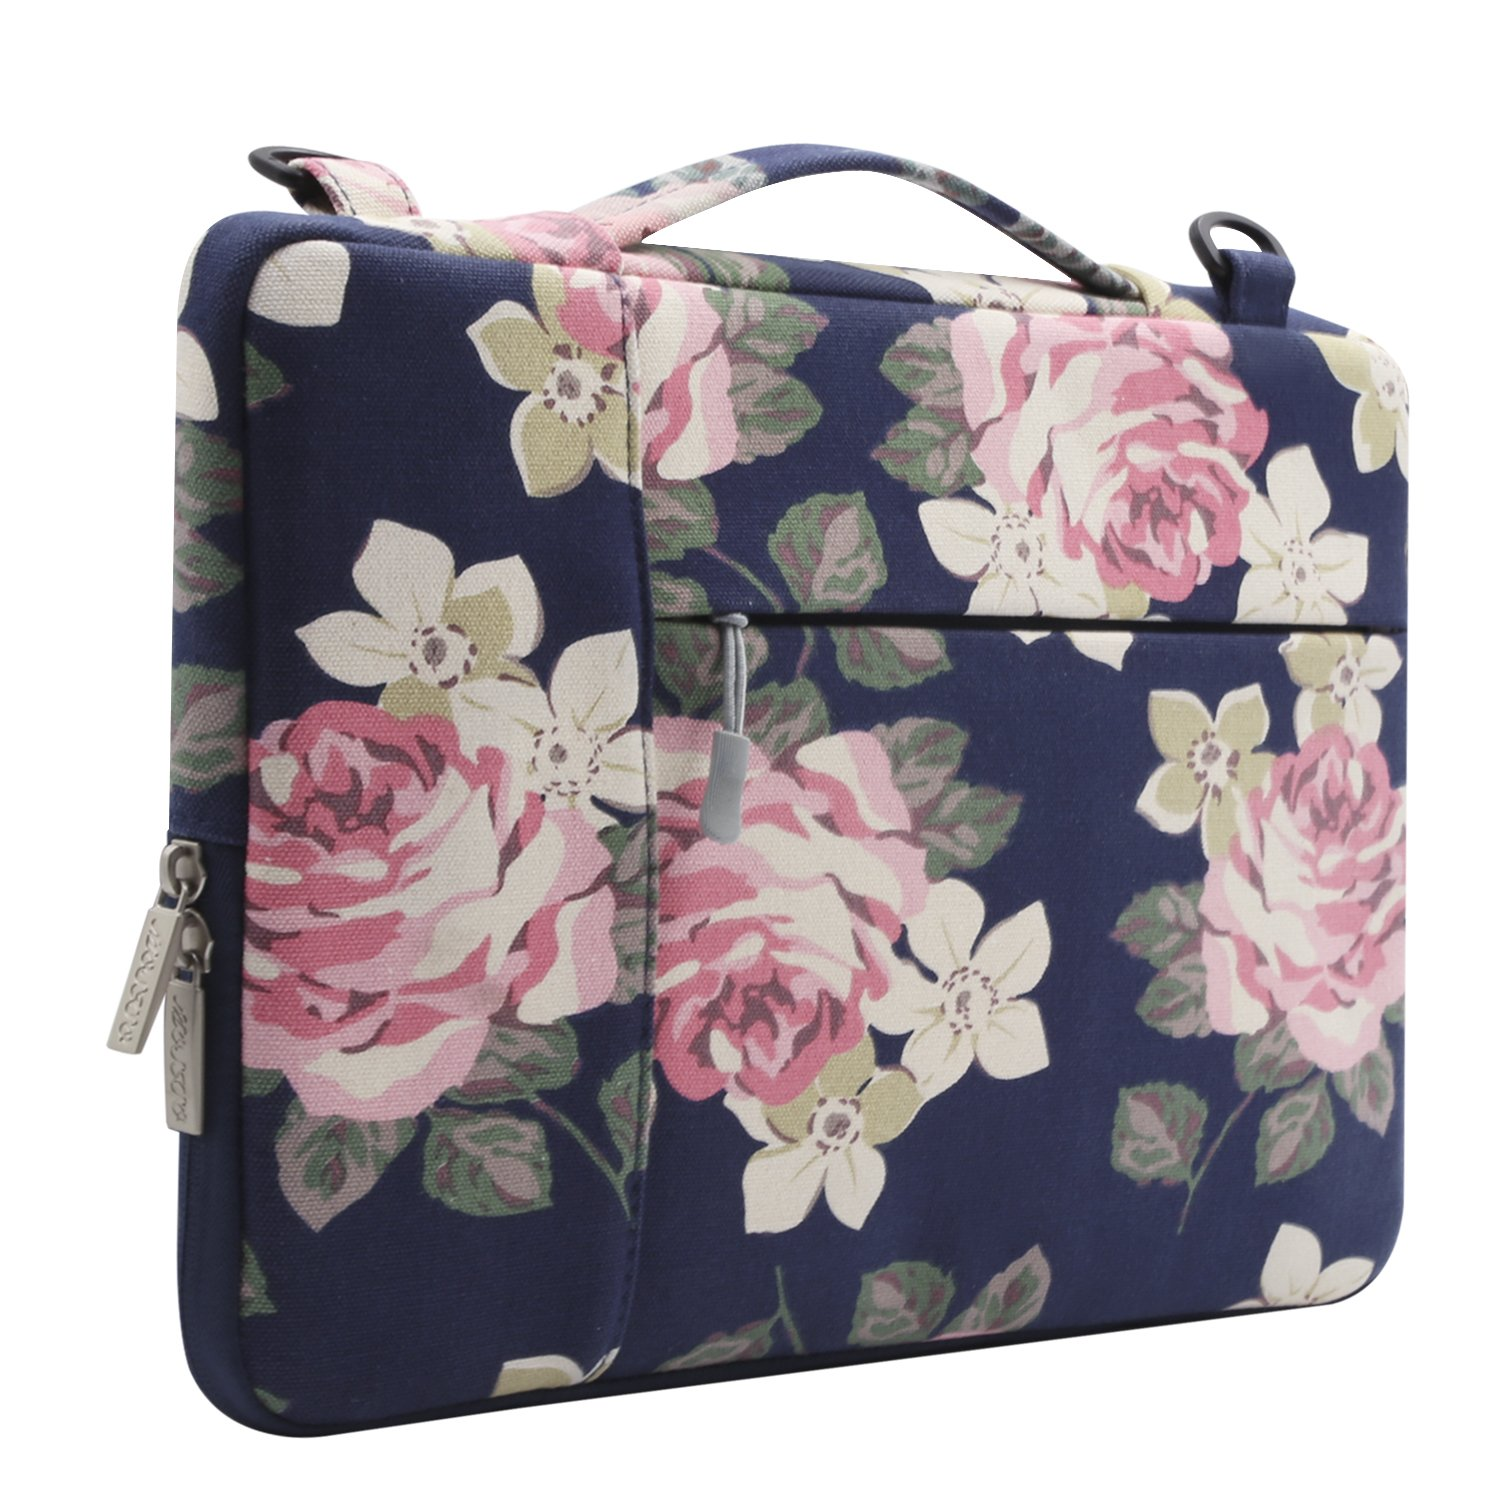 Surface Pro 6//5//4//3 Mosiso Rose Multifunctional Laptop Shoulder Bag Compatible 11.6-13 inch 2018 MacBook Air 13 A1932 Retina Display Pink 2018//2017//2016 MacBook Pro A1989//A1706//A1708